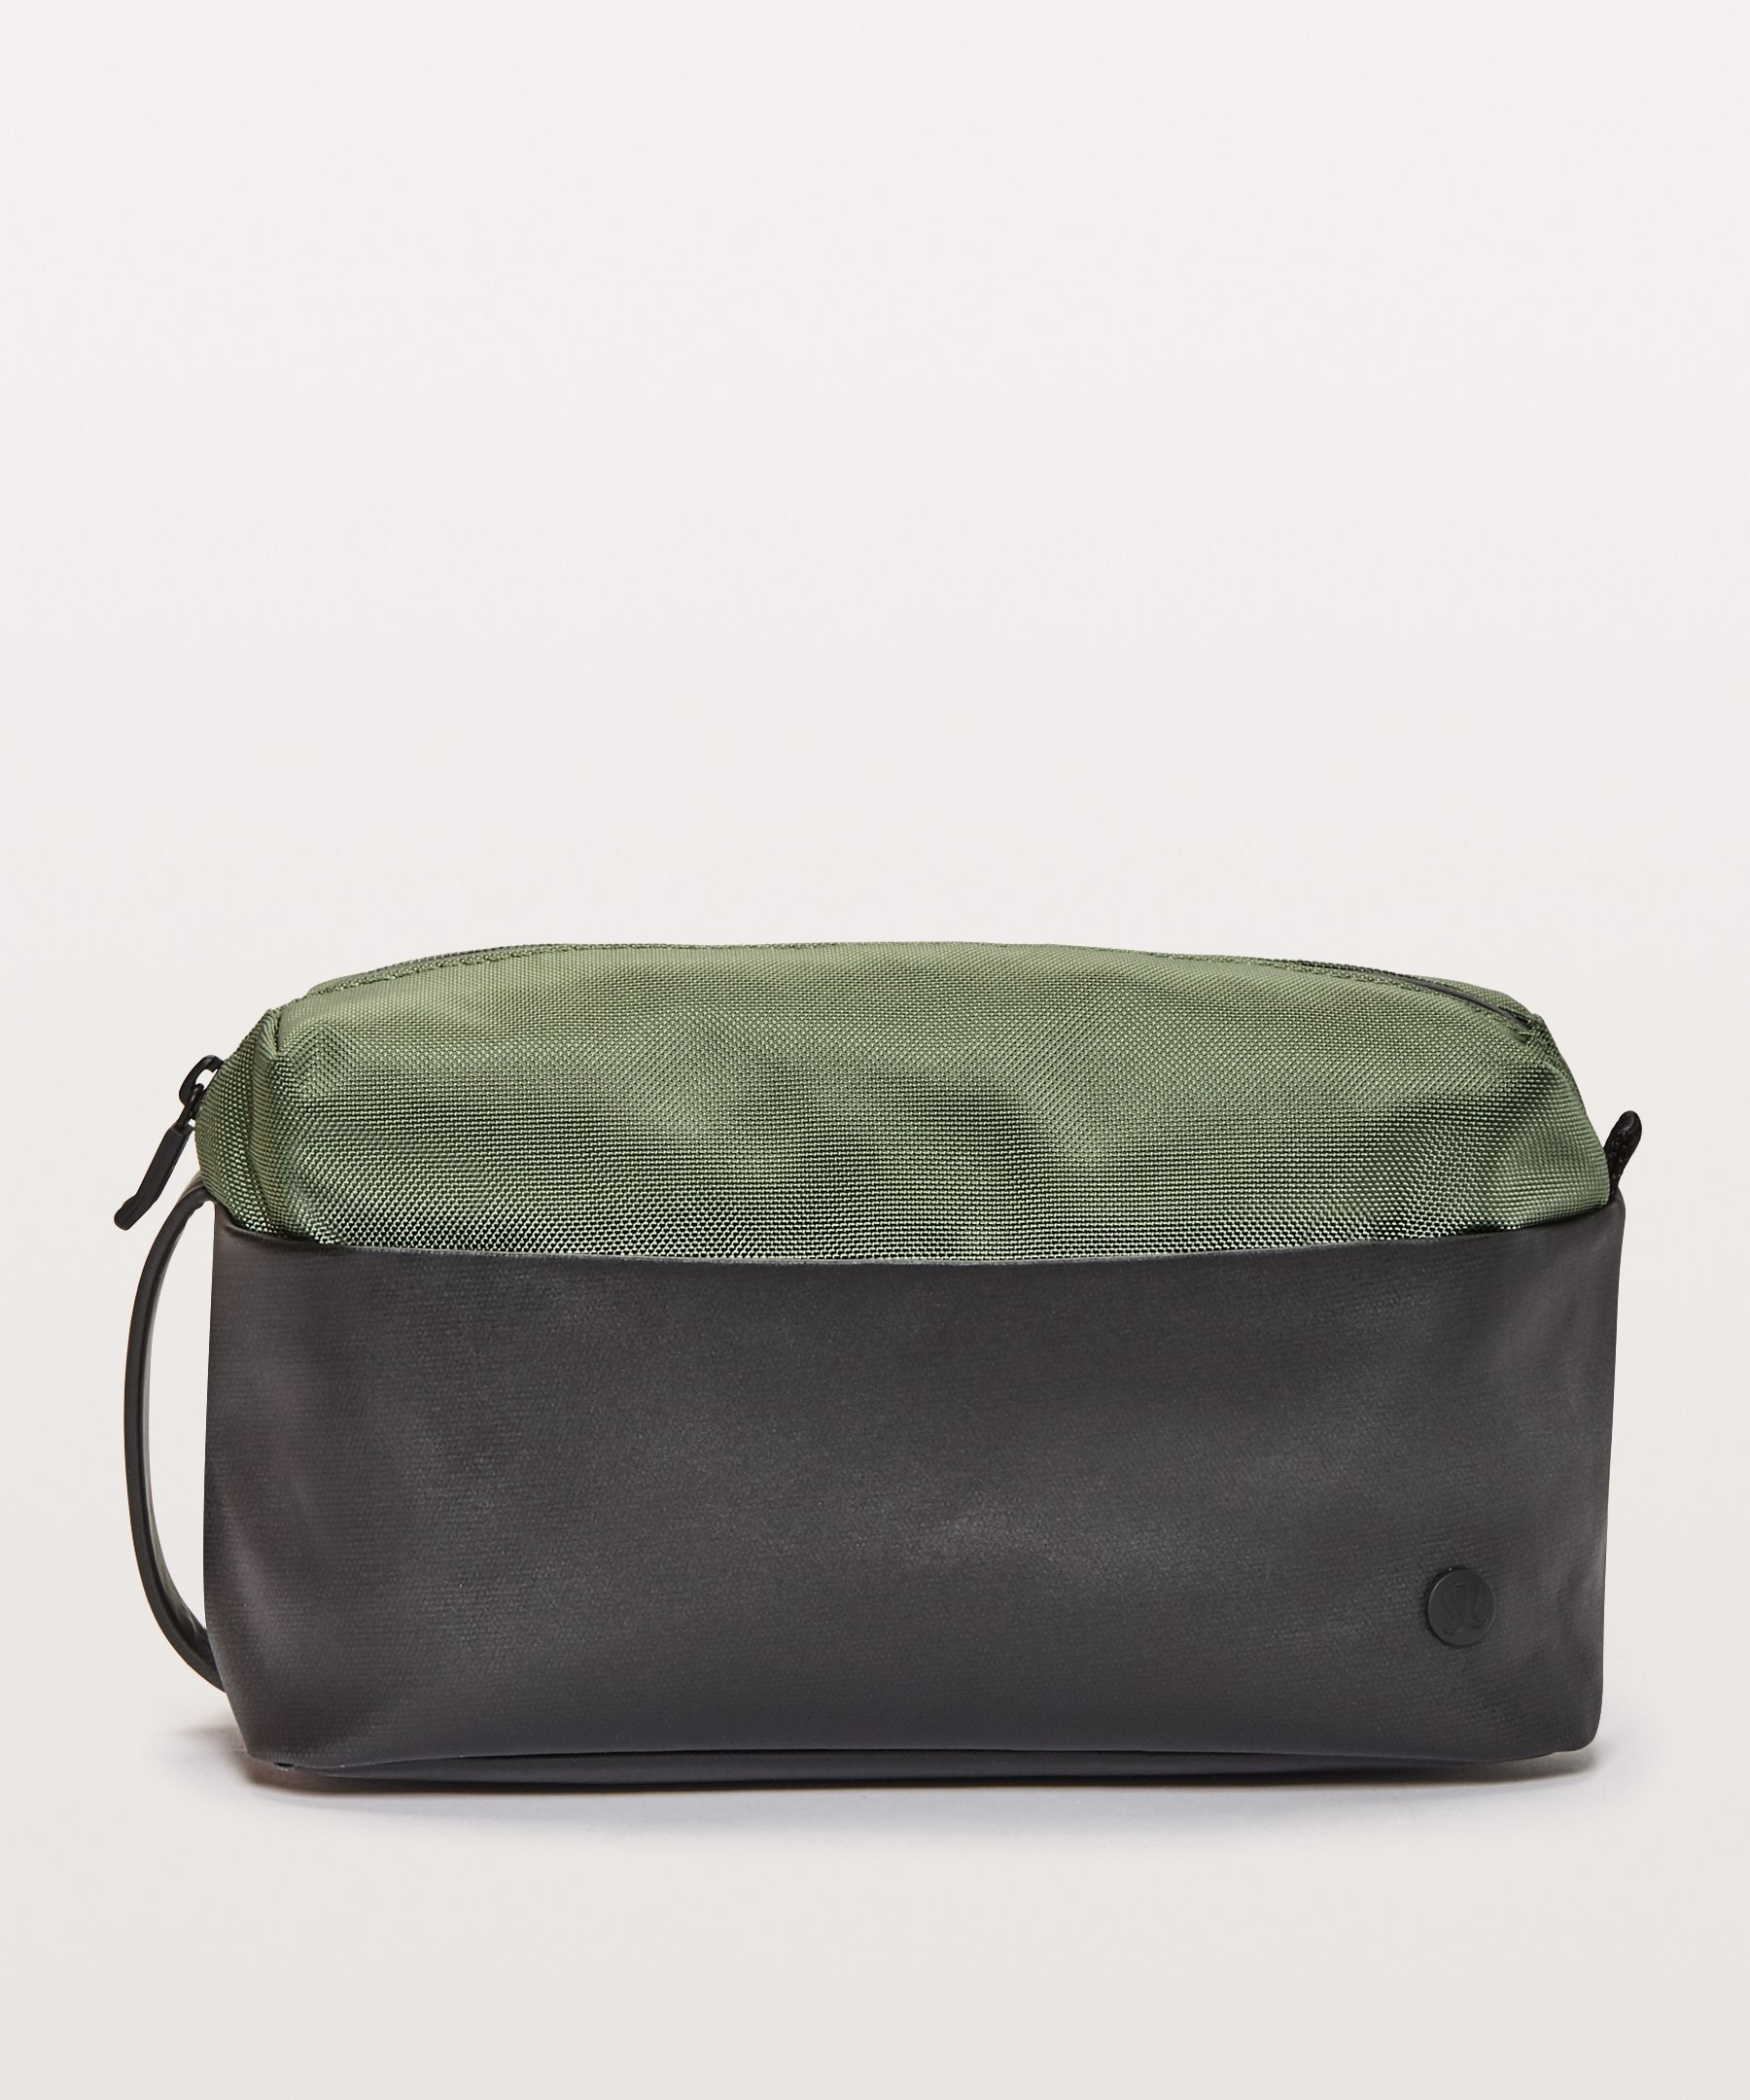 Shop the Dual Duty Dopp Kit  6L   Men s Bags. Whether you re at the gym or  jetting around the world, always have your essentials on hand. 56fe1688ba